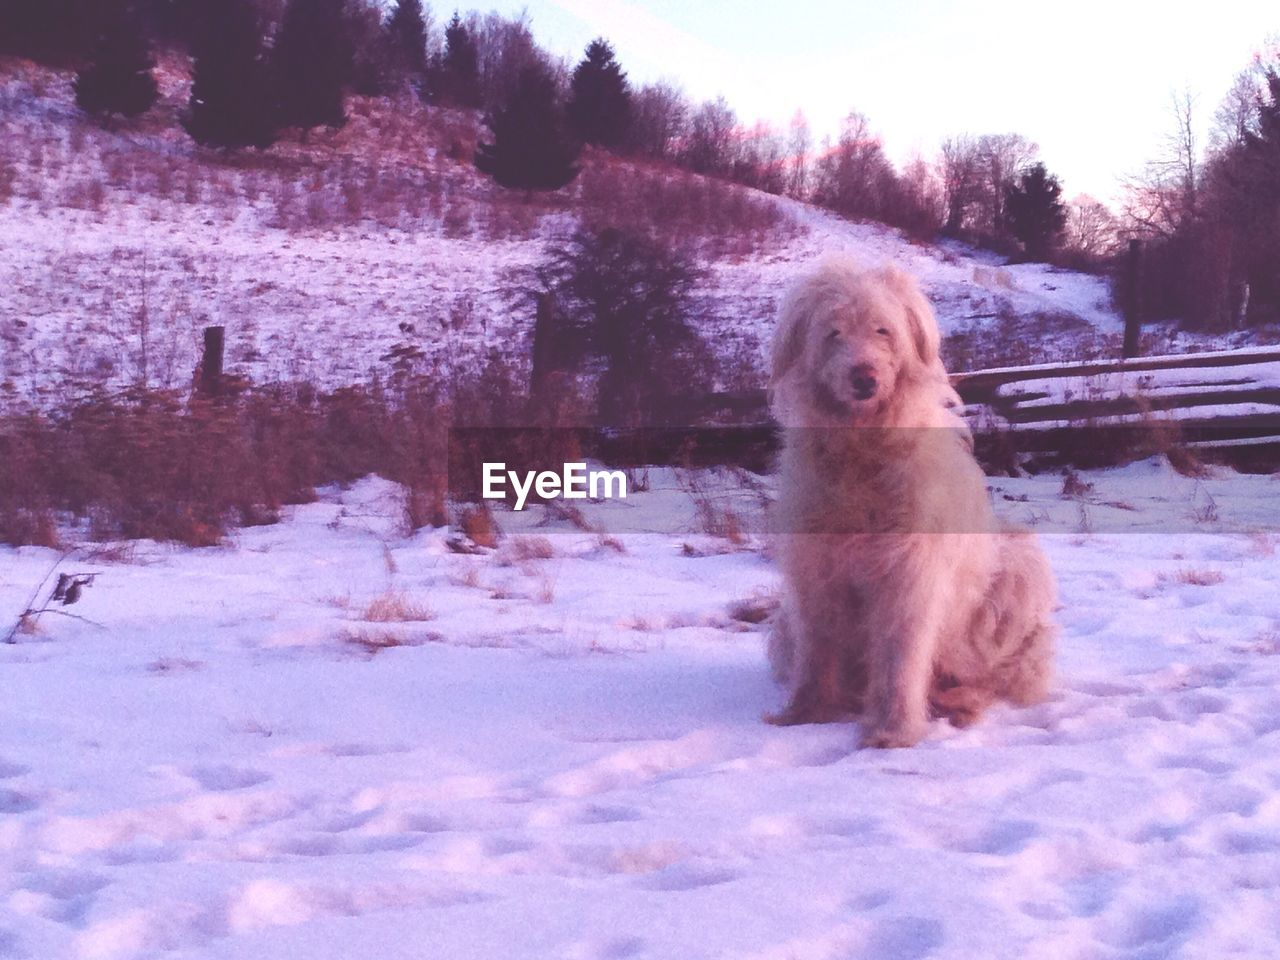 snow, winter, cold temperature, one animal, dog, animal themes, pets, weather, domestic animals, field, mammal, nature, white color, outdoors, tree, no people, day, snowing, beauty in nature, sky